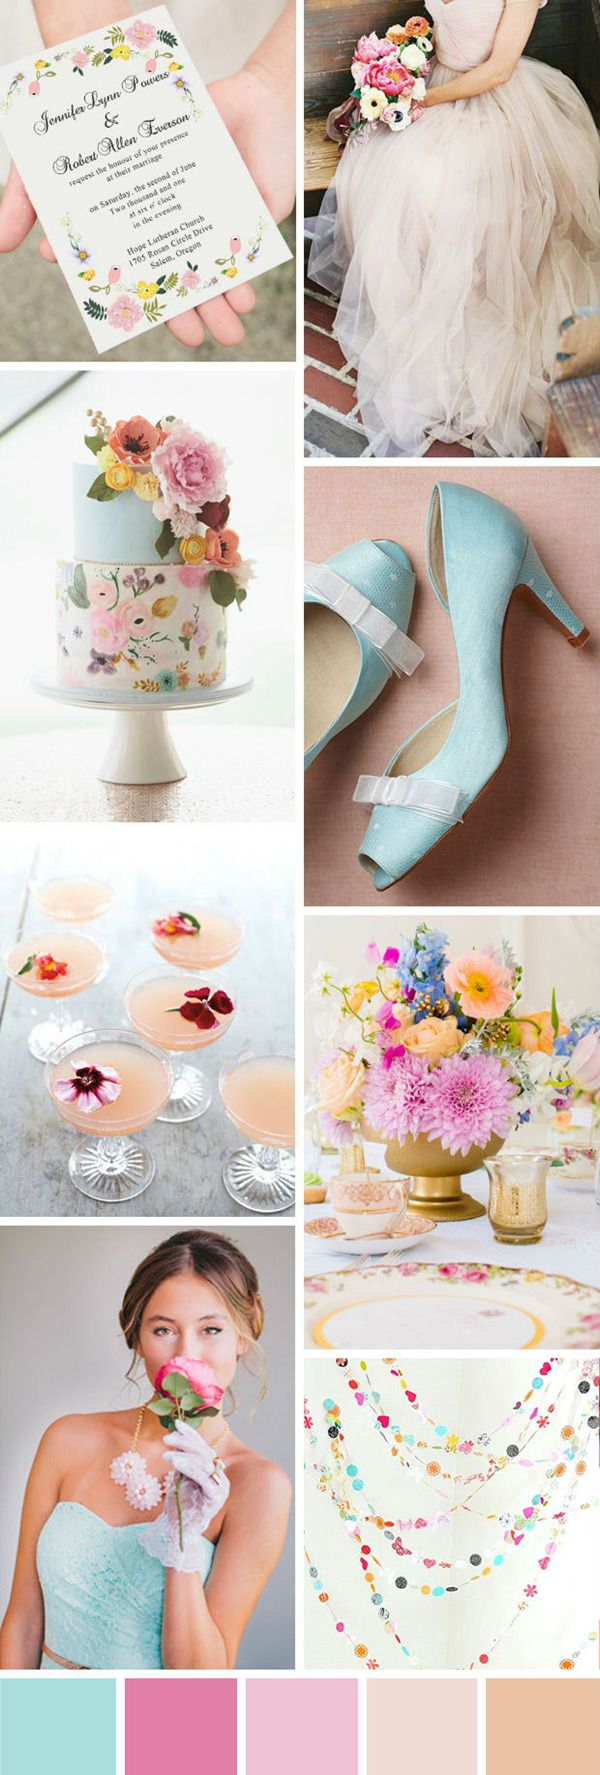 pretty spring  pastel color wedding ideas with wonderful combos